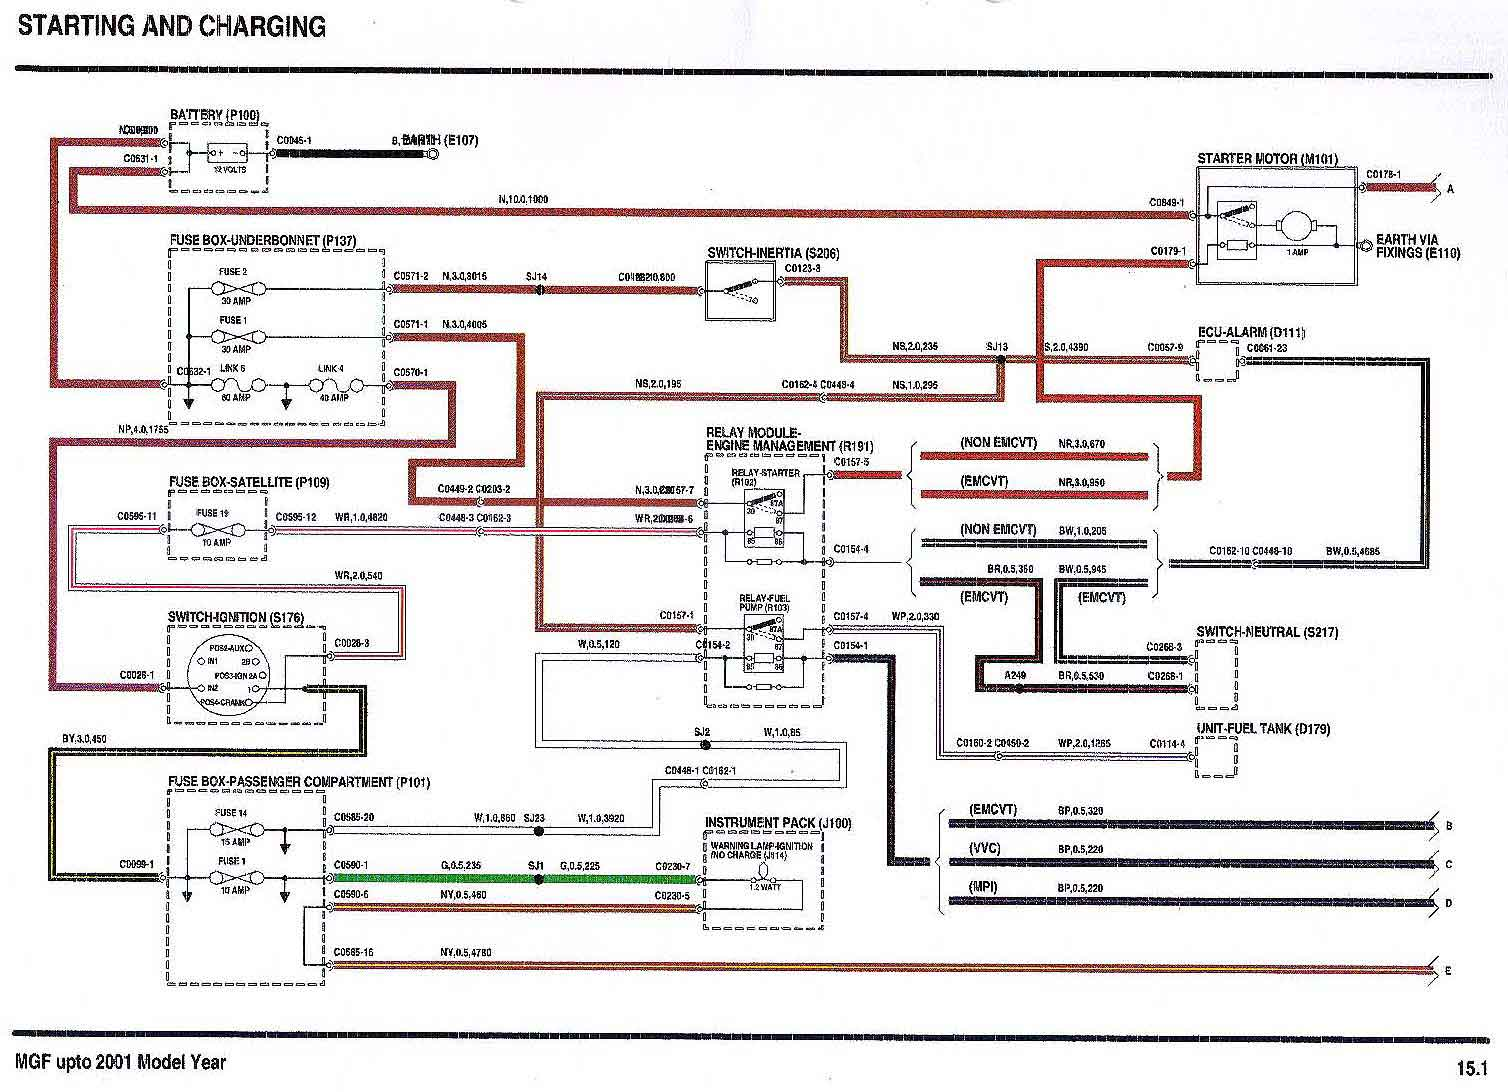 Wiring Diagram Rover 75 Seats Schema Img Electrical Ladder As Well Function Block Cdt Data Today Basic House Diagrams